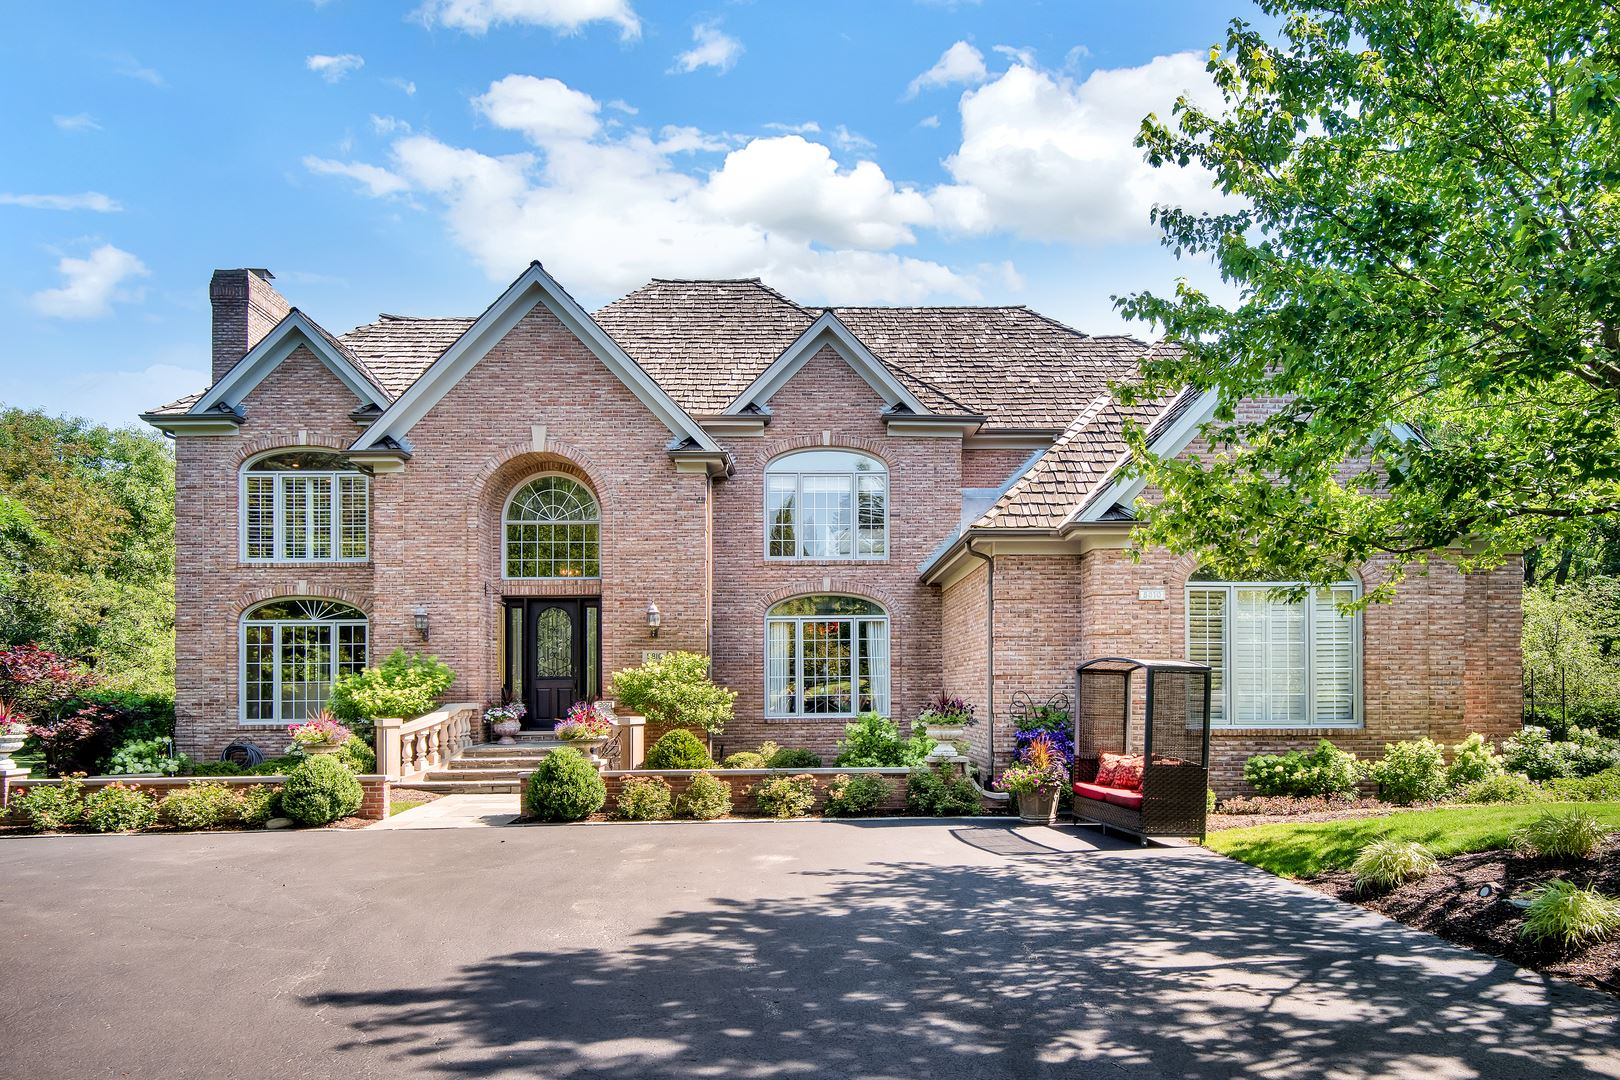 5810 Teal Court, Long Grove, IL 60047 - #: 10708764